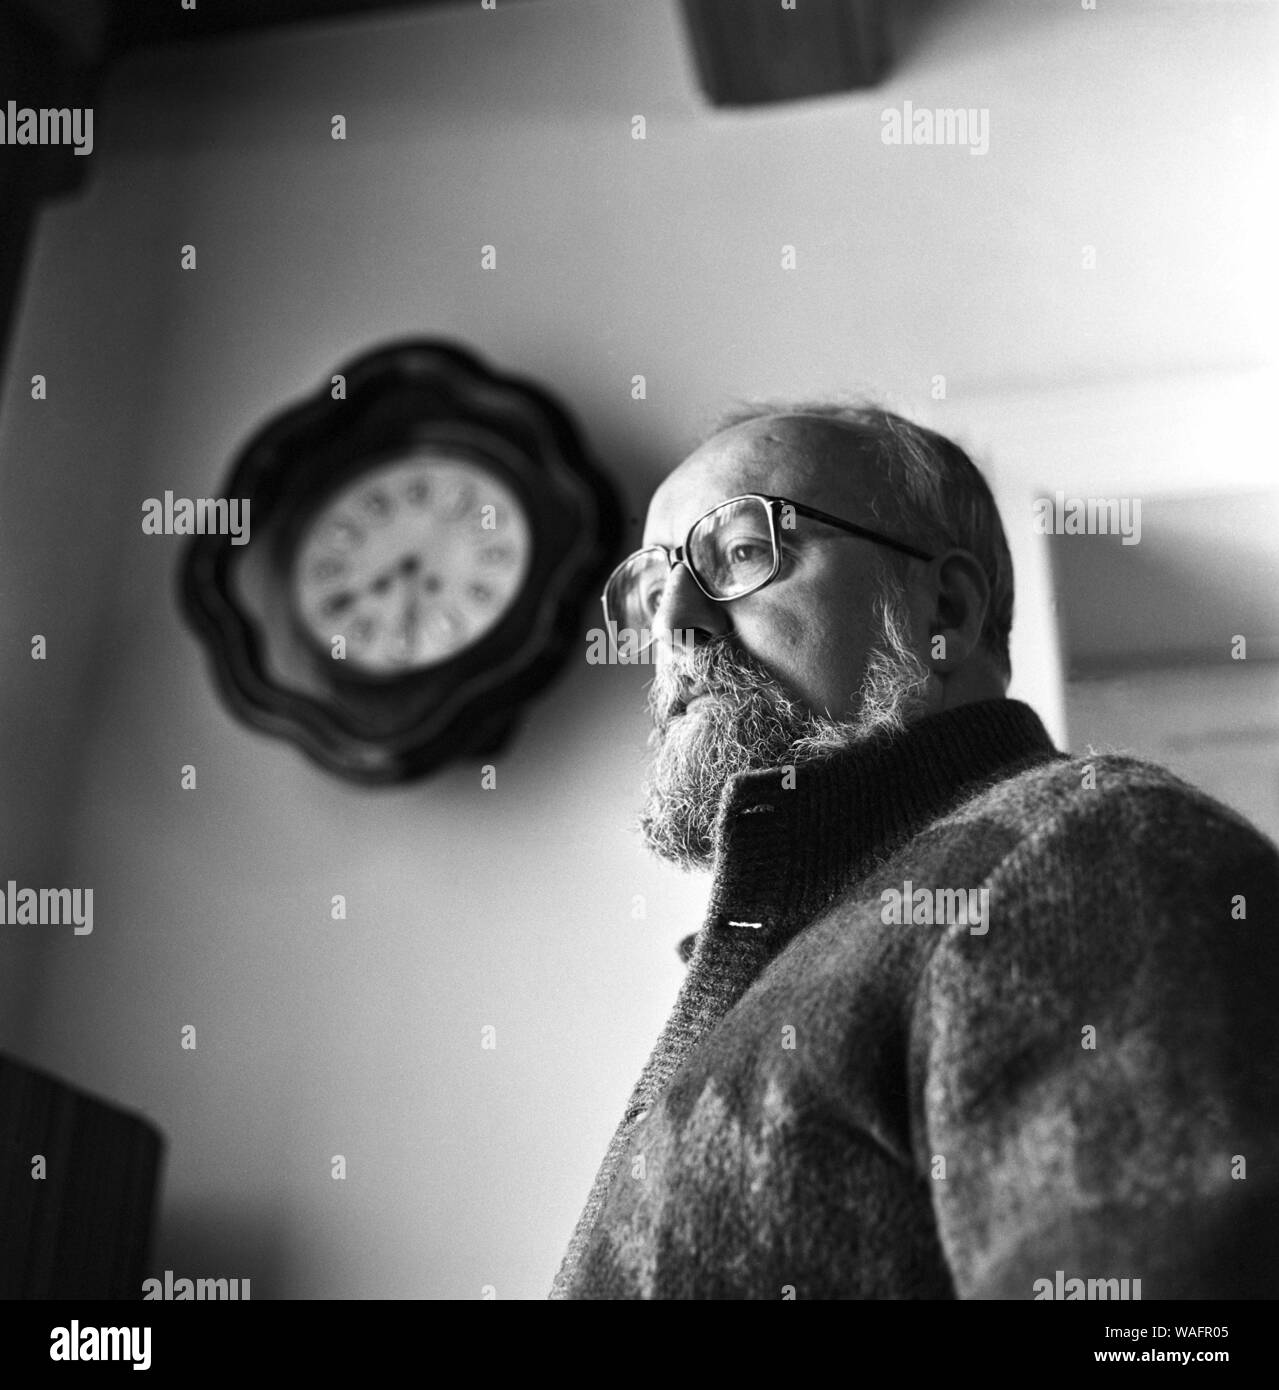 Luslawice 17.02.1987. Krzysztof Penderecki in his home in Debica. Born in 1933, he was a world famous composer and conductor. He studied at the Music Academy in Cracow, and worked as a professor and principal at the same institution. He was director of the Cracow Philharmonia from 1987-1990, from 1993 he was the artistic director of the Casal festival in San Juan in Puerto Rico. From 1997, he was the musical director of the Warsaw Philharmonia and received the following awards: National award, (1968, 1983), Polish Composers Union (1970), Grammy Award (1988, 1999, 2001), International Music Cou Stock Photo